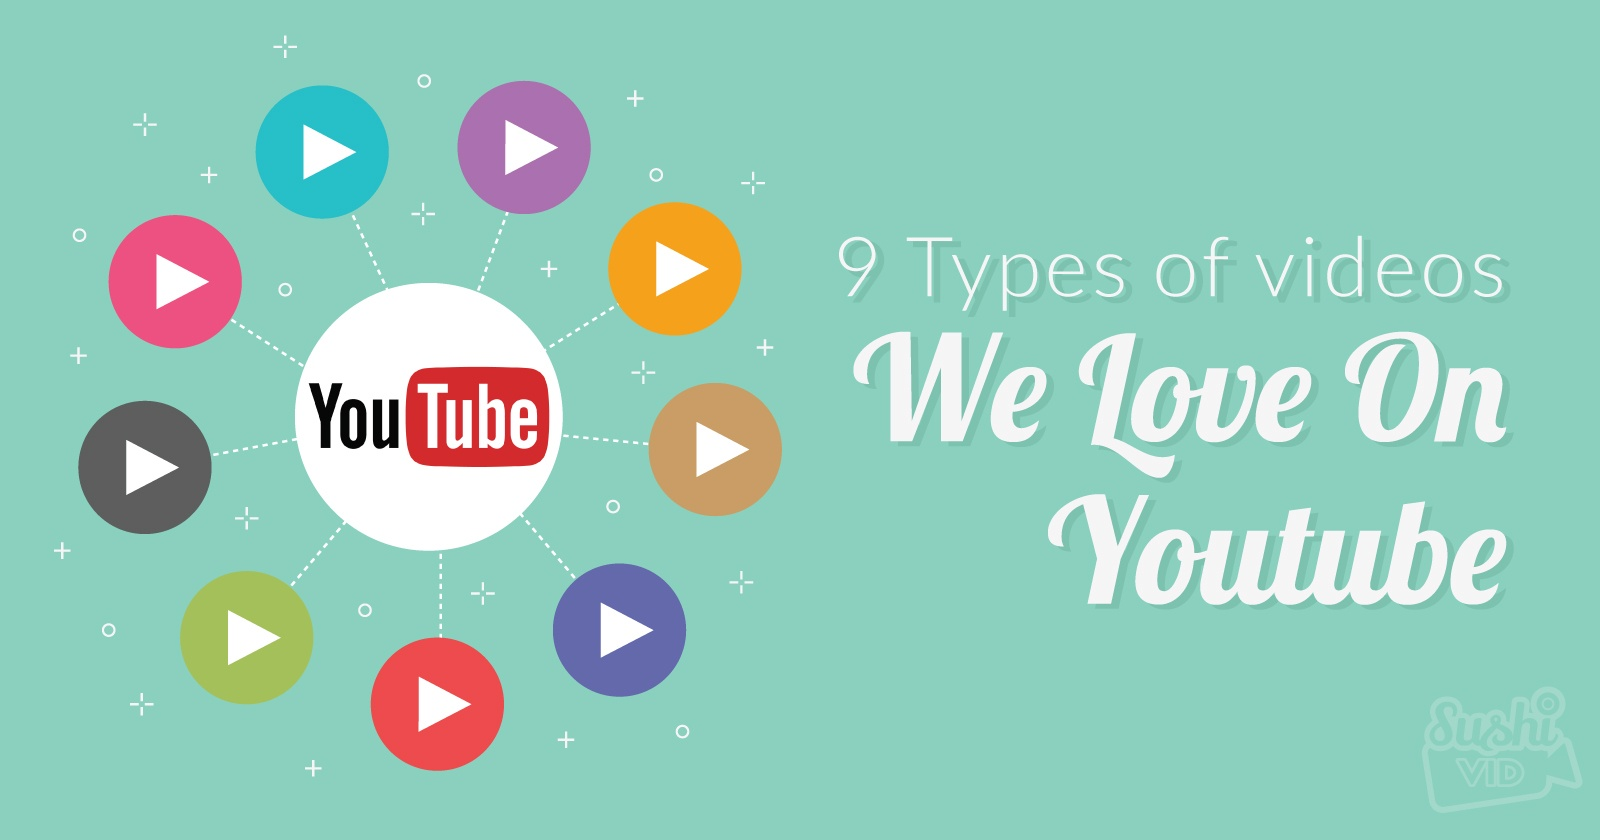 20151105 - 9 most popular types of videos on YouTube - Influencer Marketing.jpg